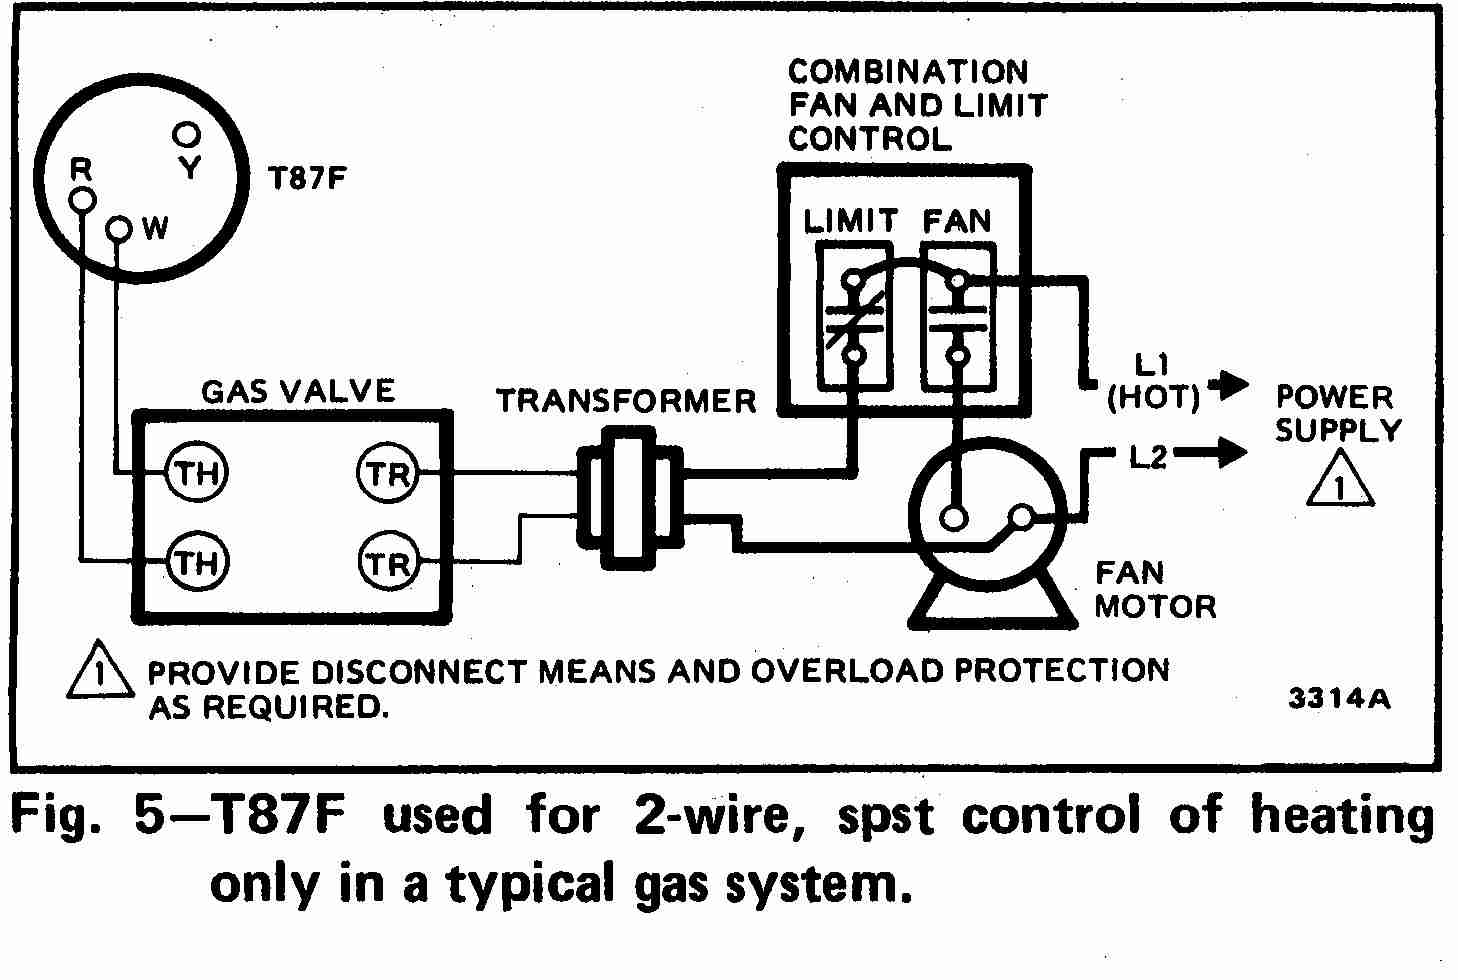 TT_T87F_0002_2Wg_DJF room thermostat wiring diagrams for hvac systems cooling only thermostat wiring diagram at readyjetset.co